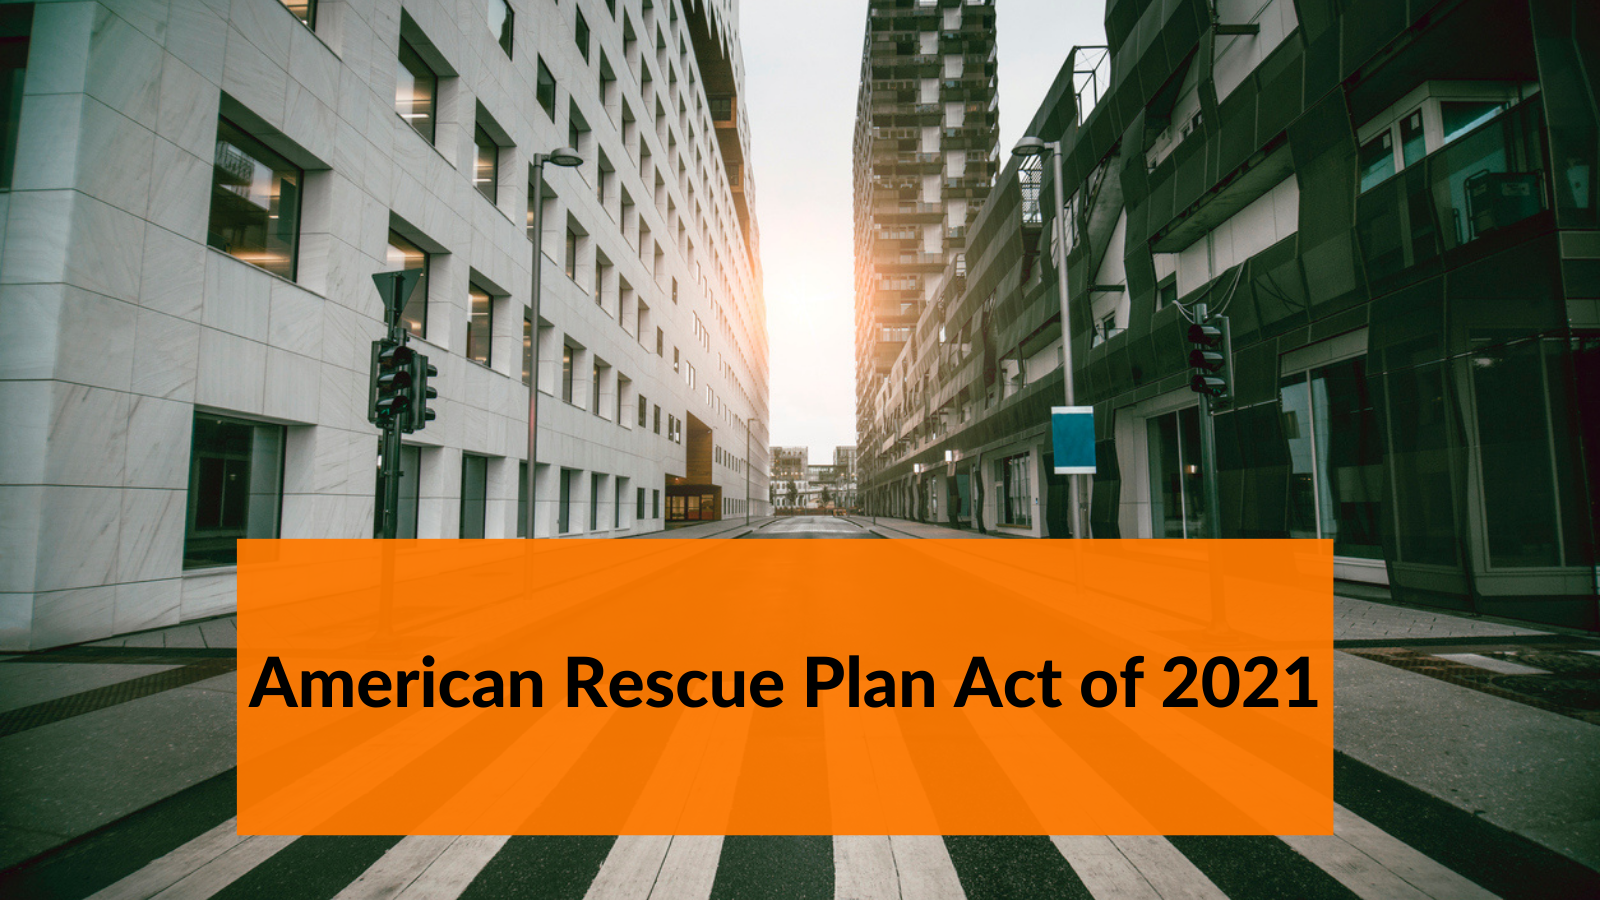 American Rescue Plan Act of 2021 offers $130.2 billion in relief for local governments